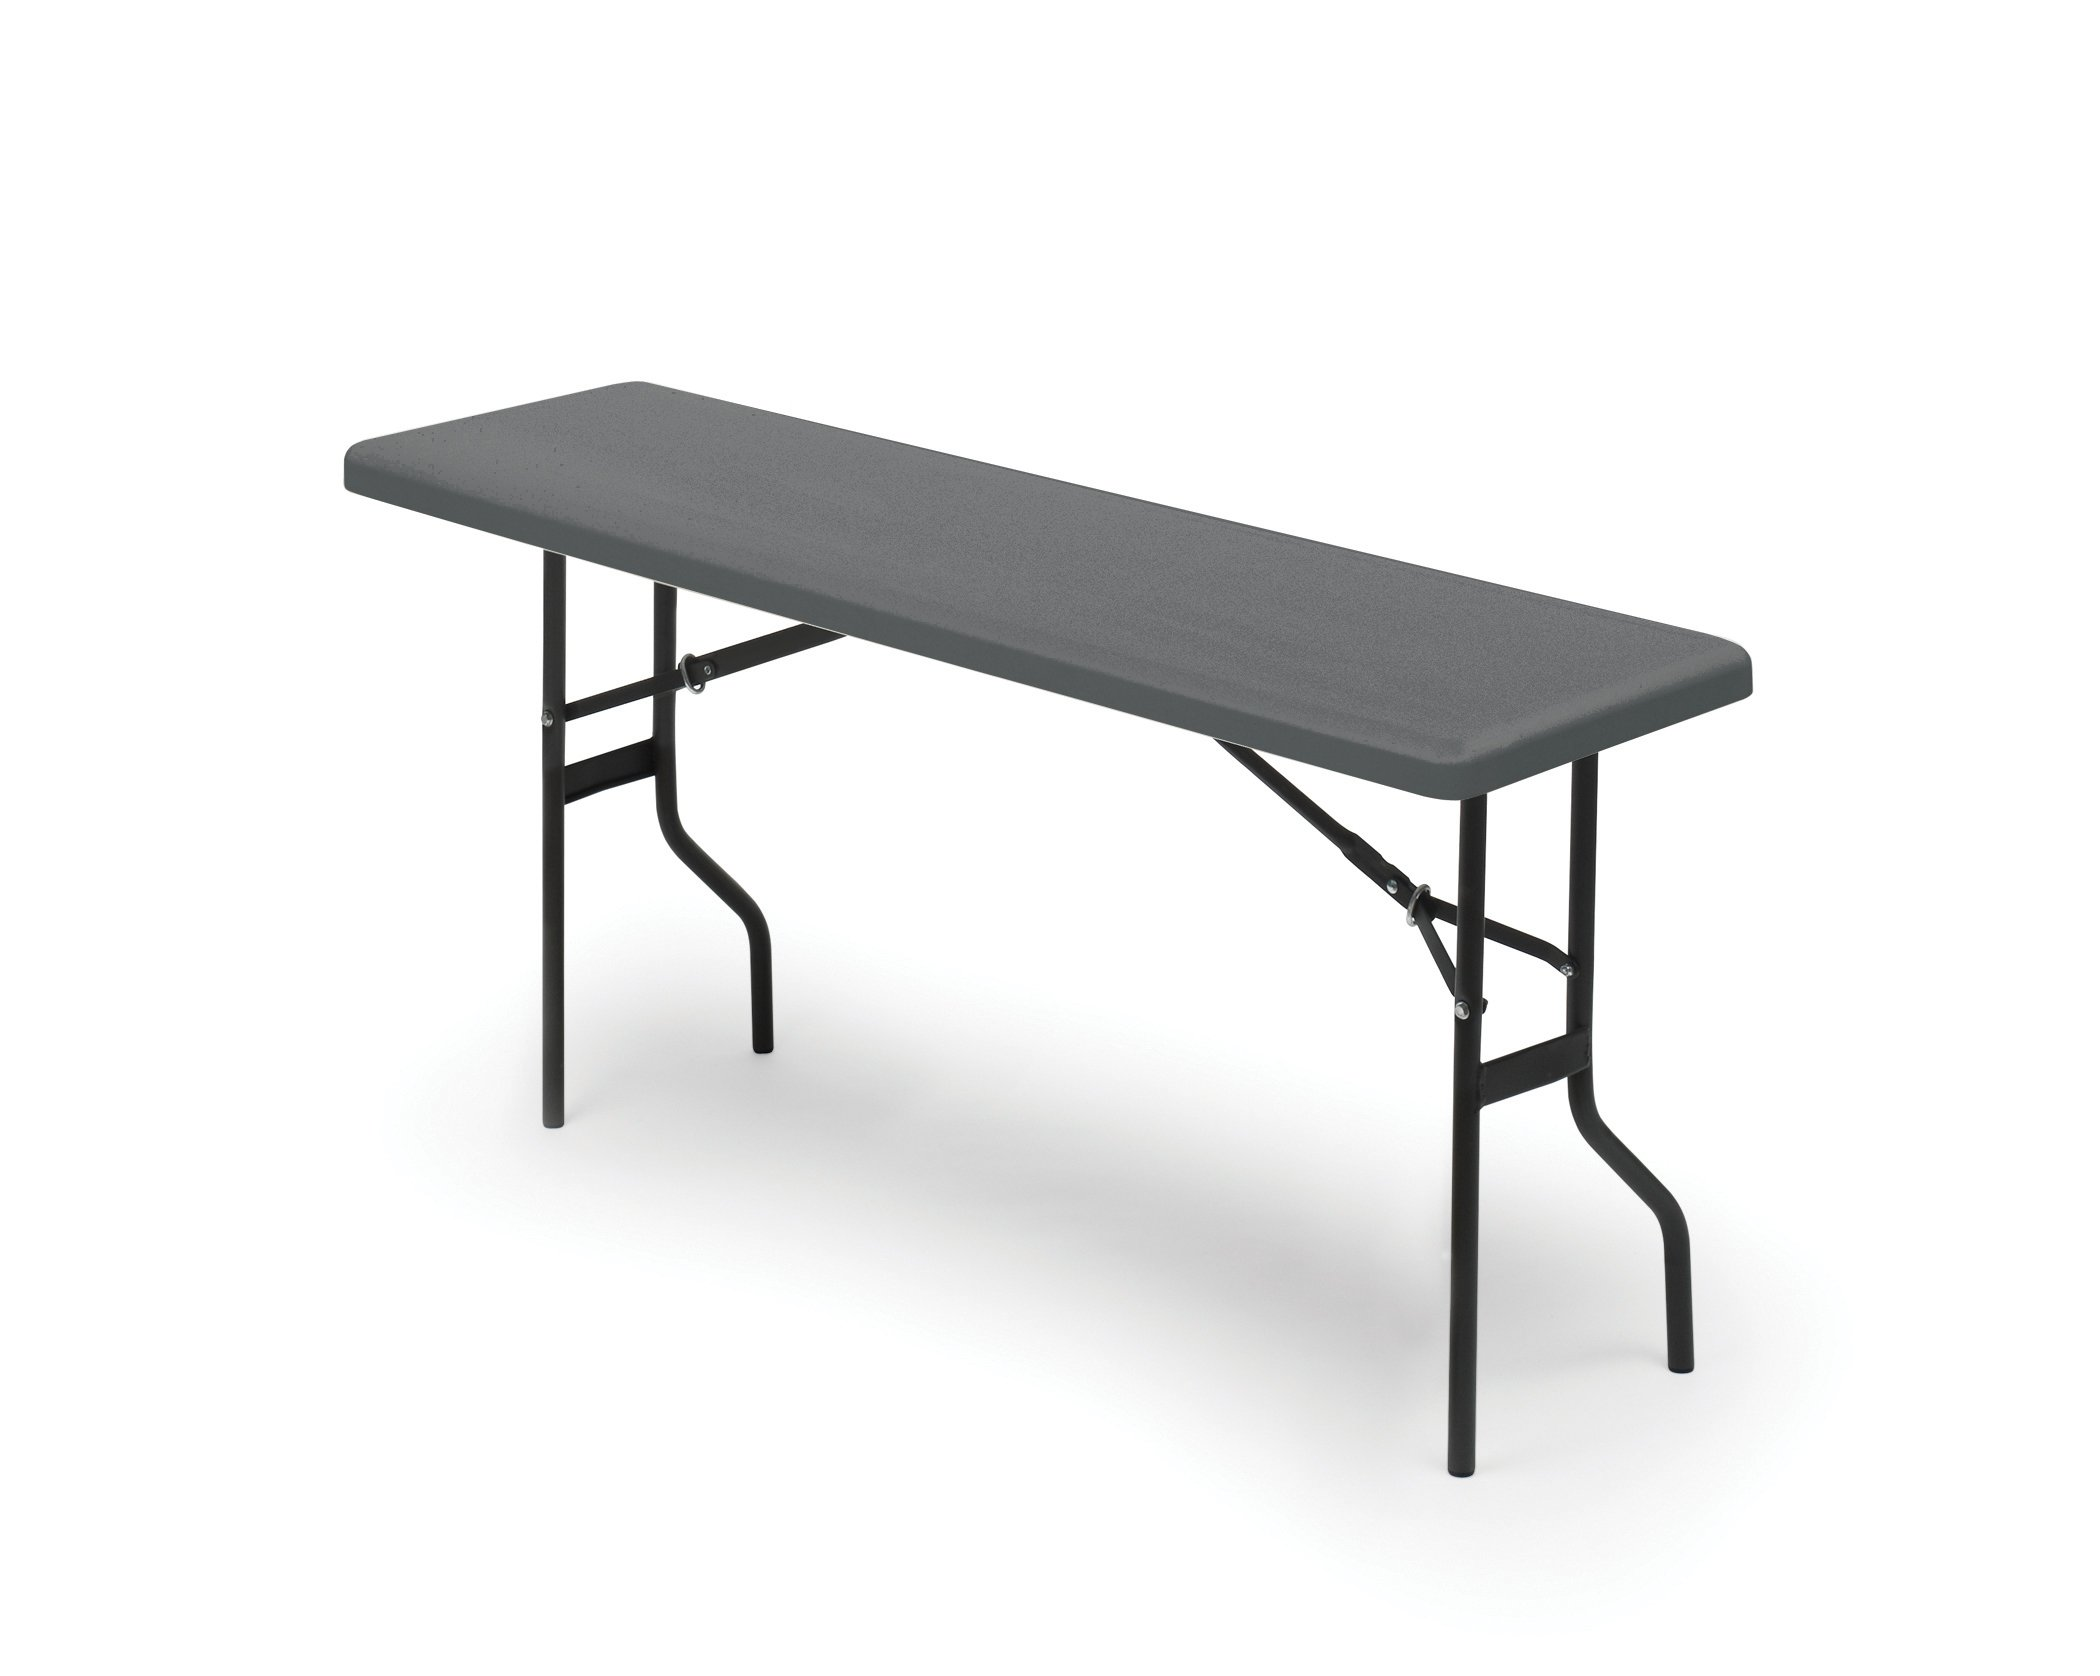 Iceberg 65367 Indestructible 1200 Series Folding Table, 250 lb Capacity, 72'' Length by 18'' Width by 29'' Height, Charcoal